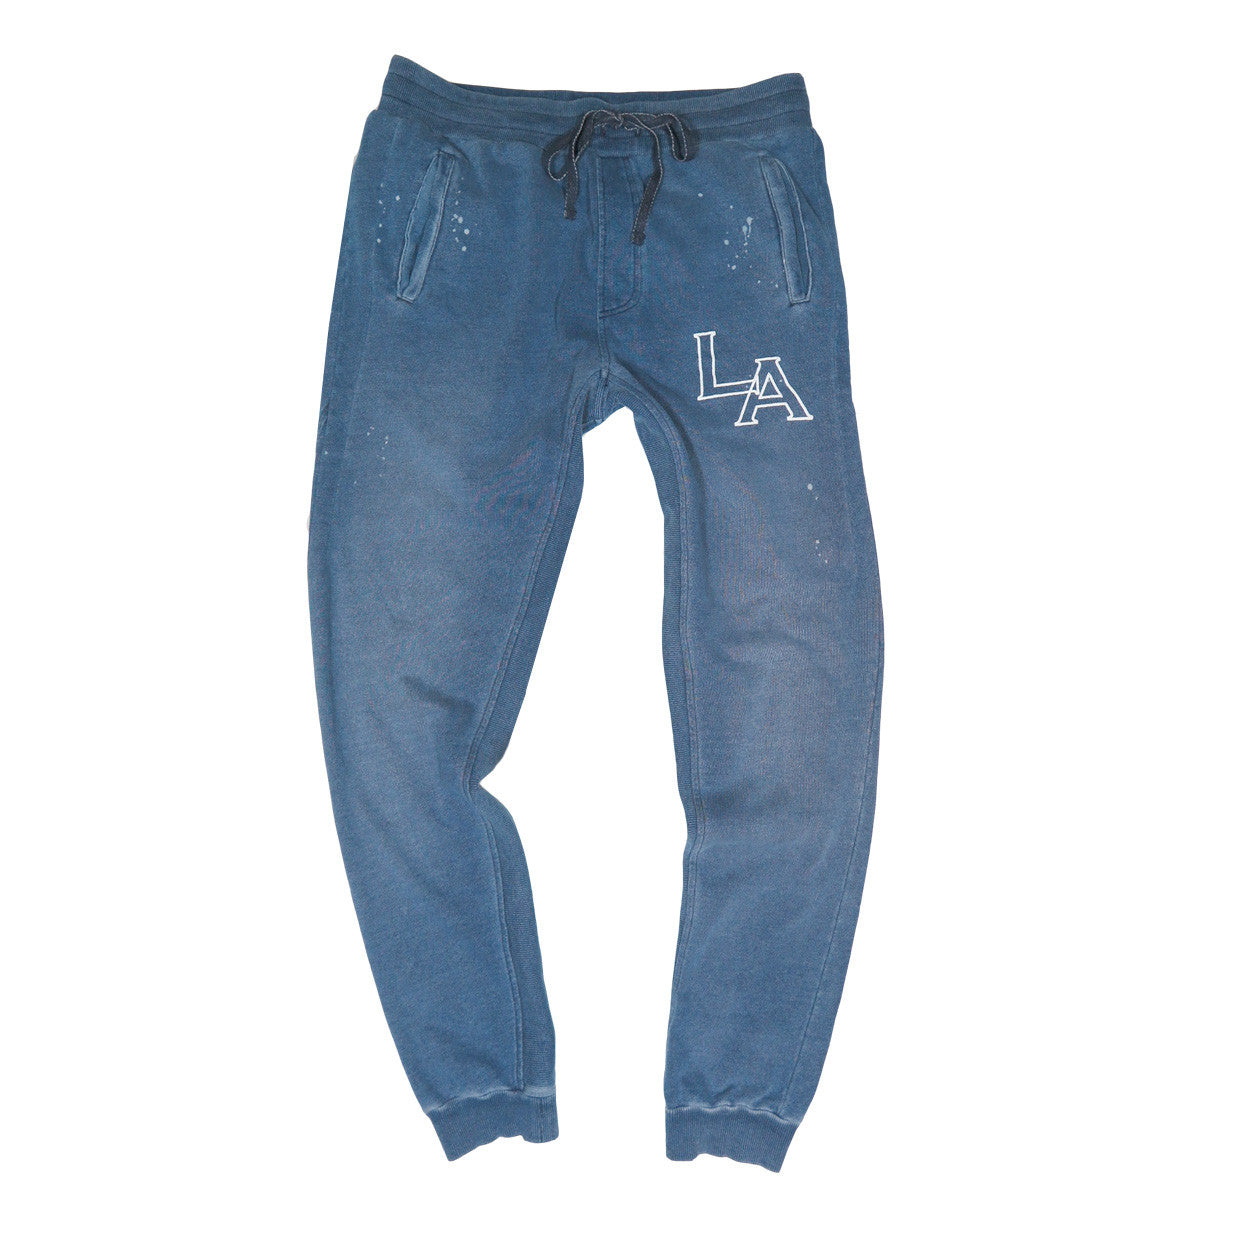 MEN'S LA PRINTED INDIGO JOGGER | Instantly Available